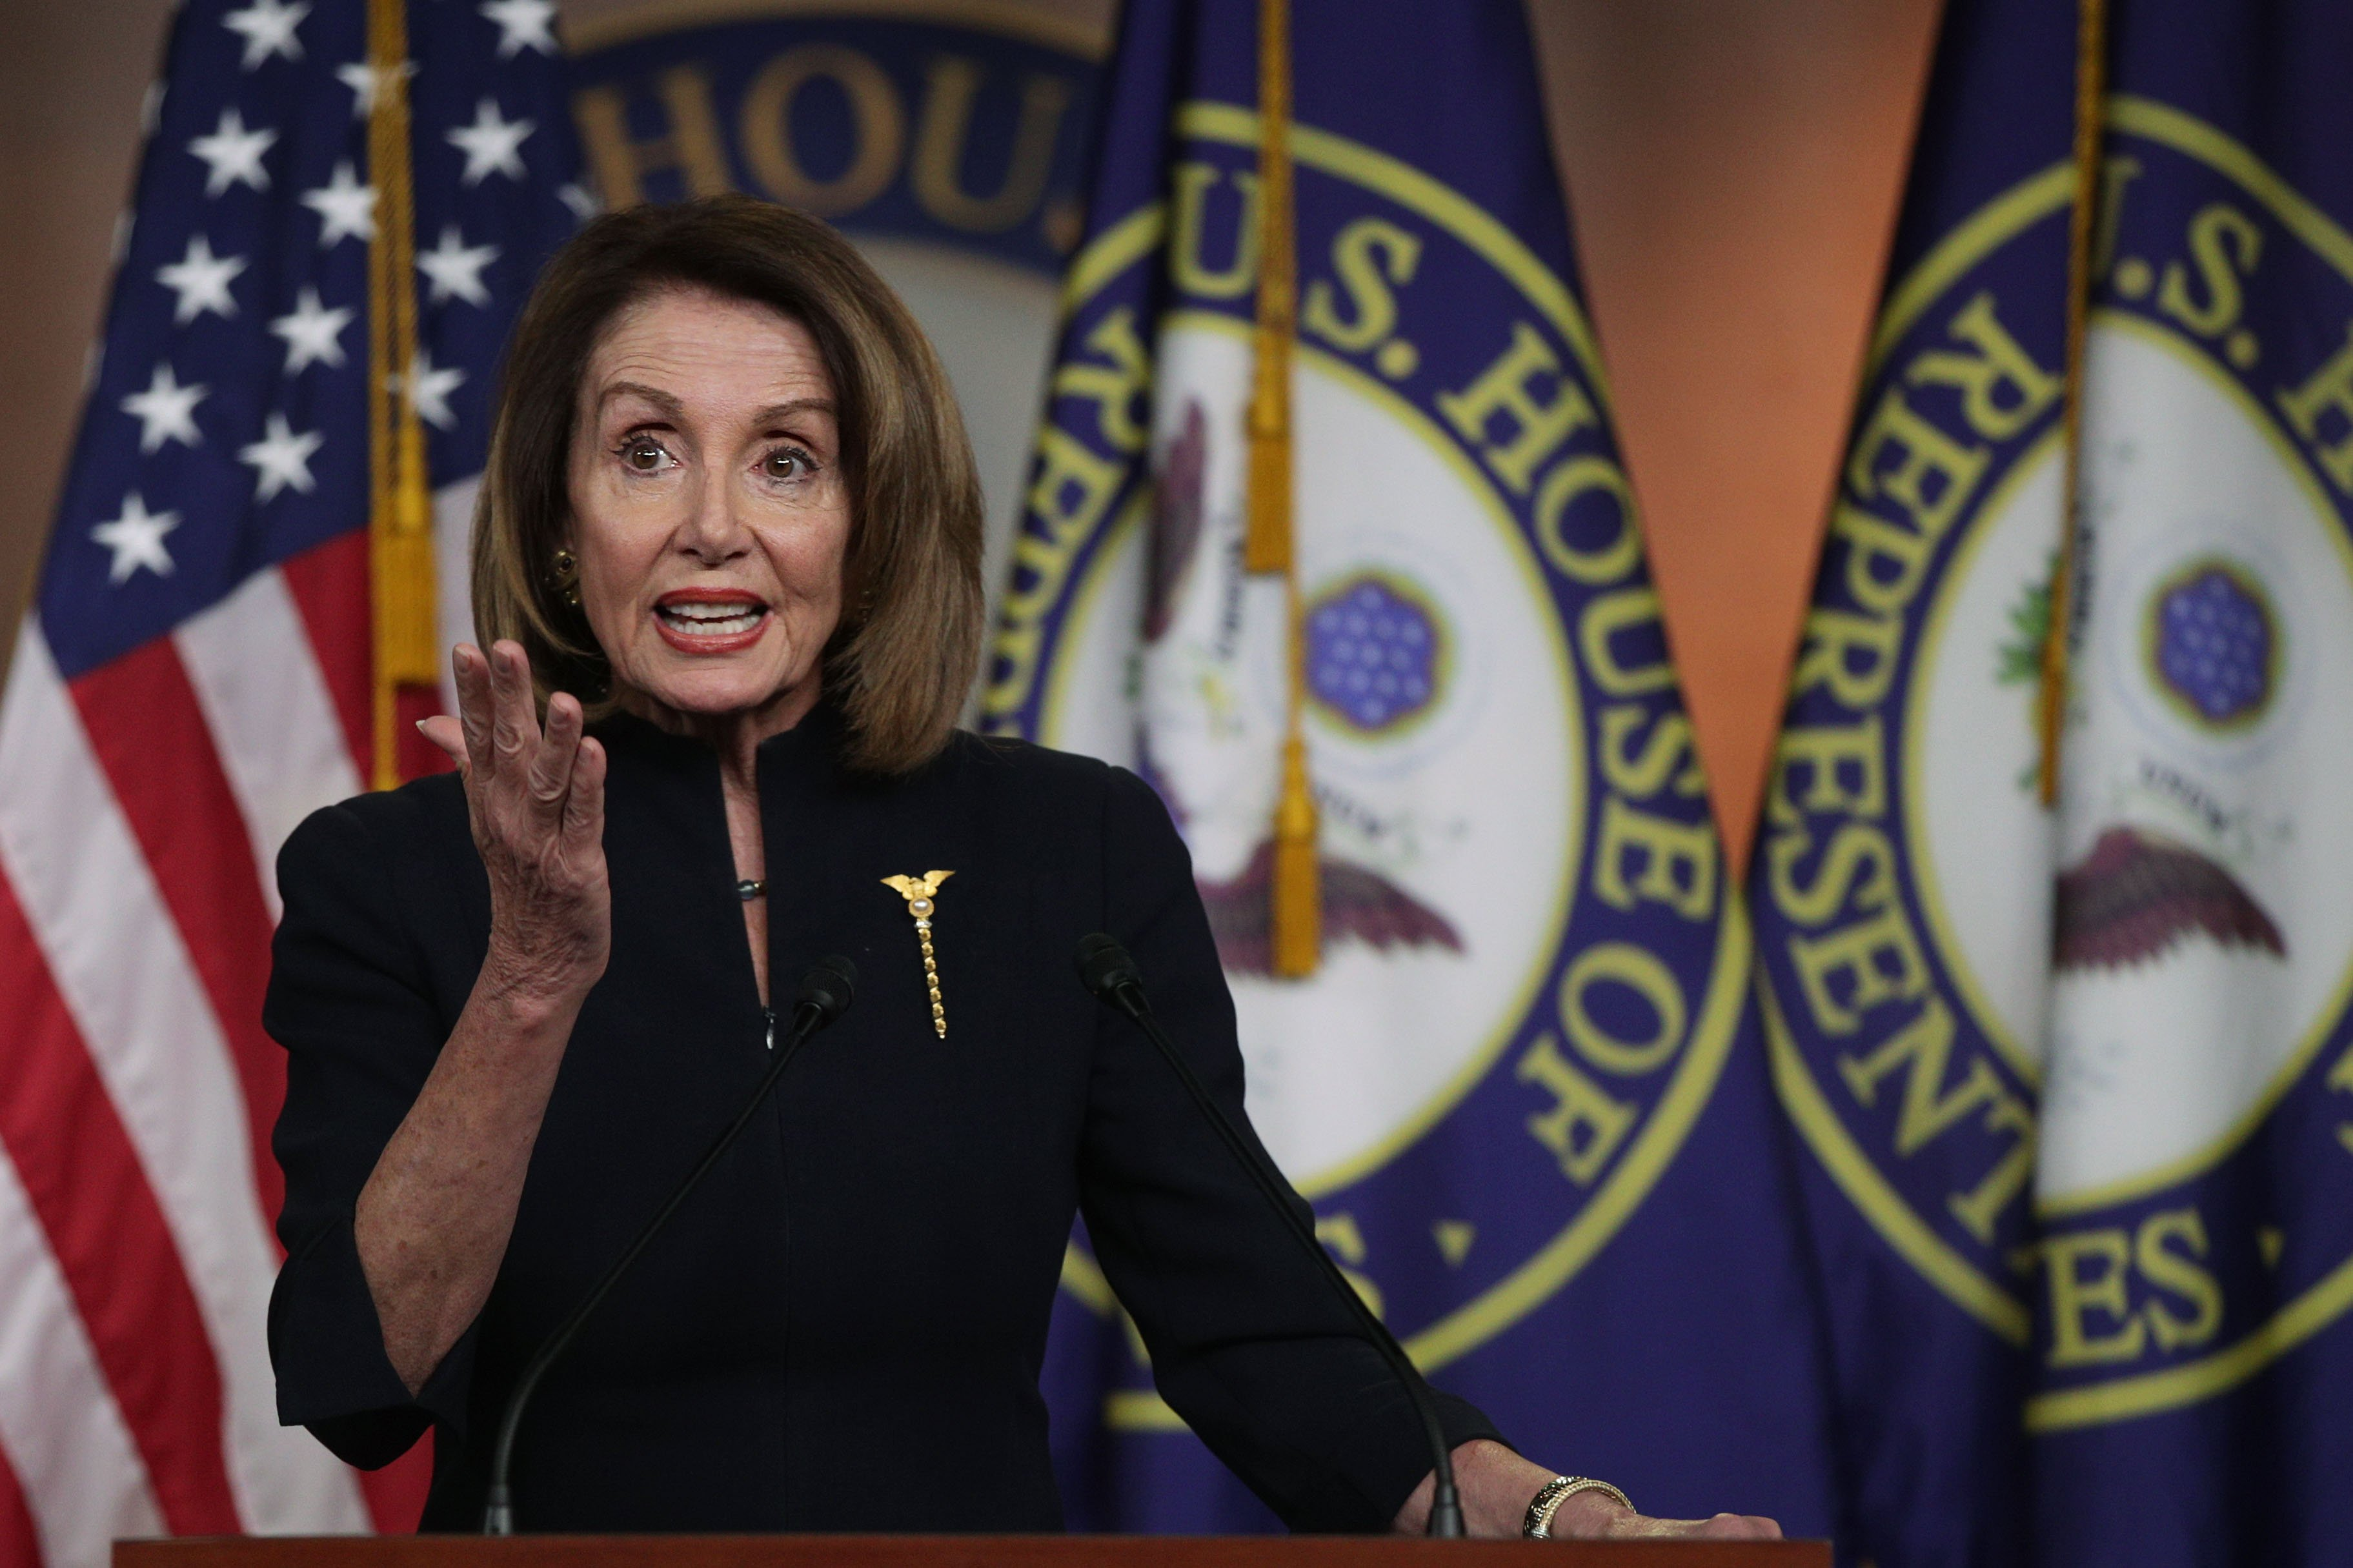 Speaker of the House Nancy Pelosi giving a speech   Photo: Getty Images